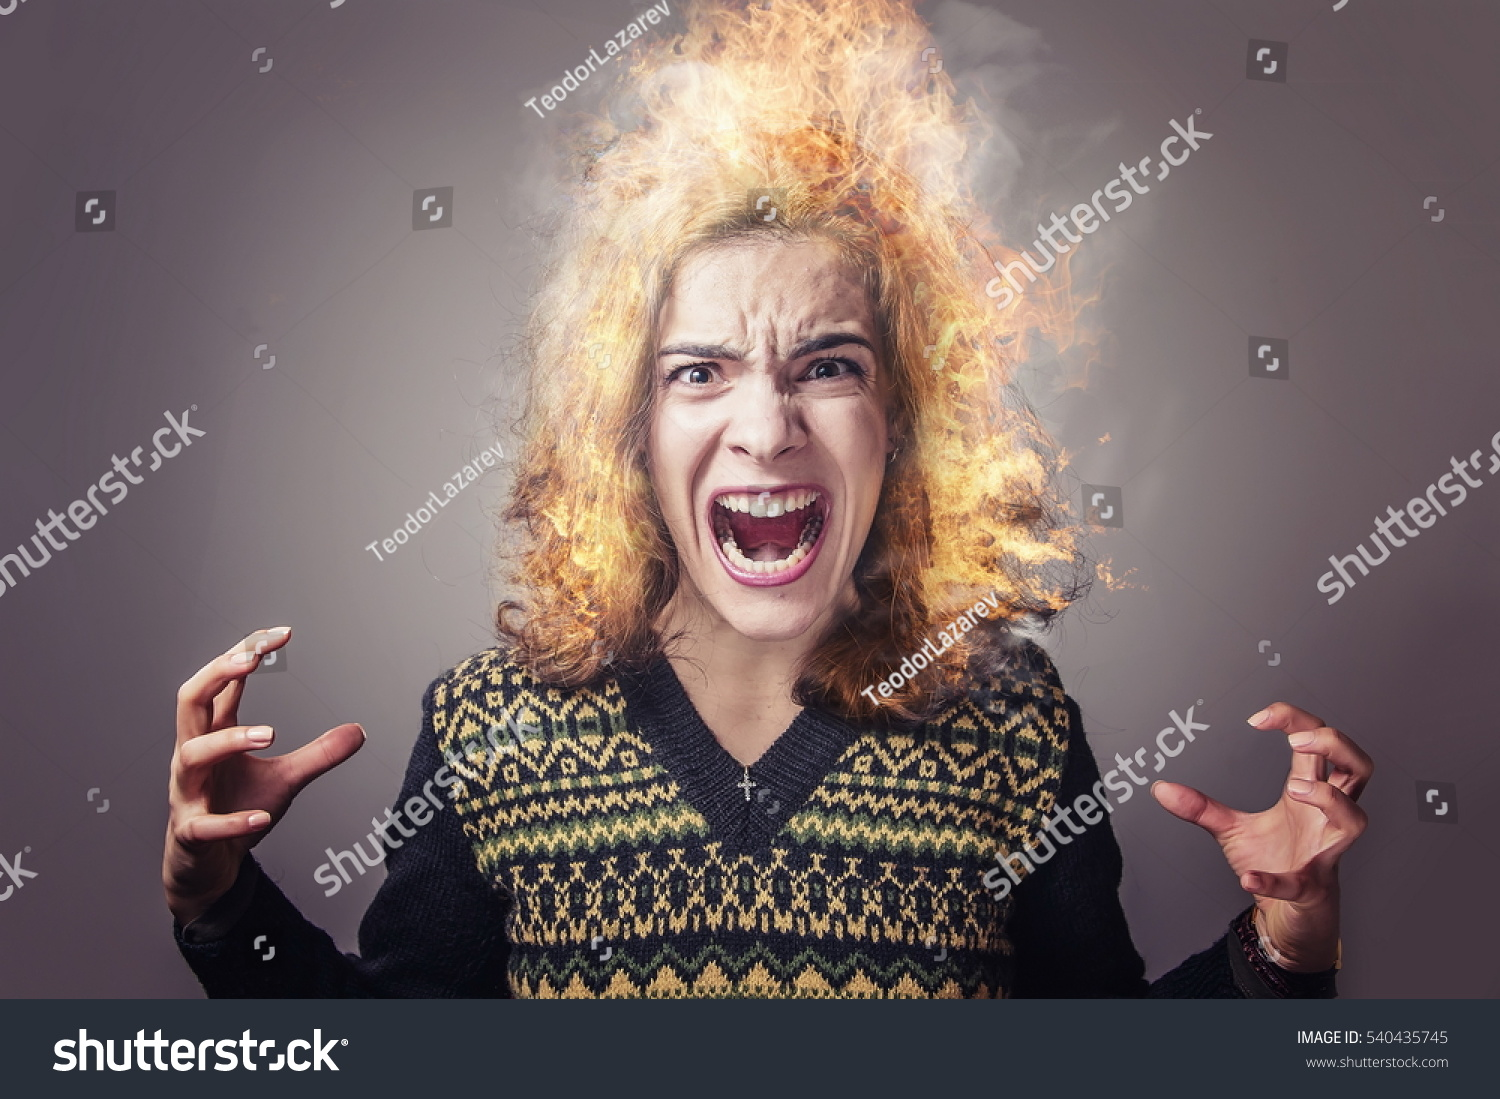 stock-photo-furious-and-frustrated-woman